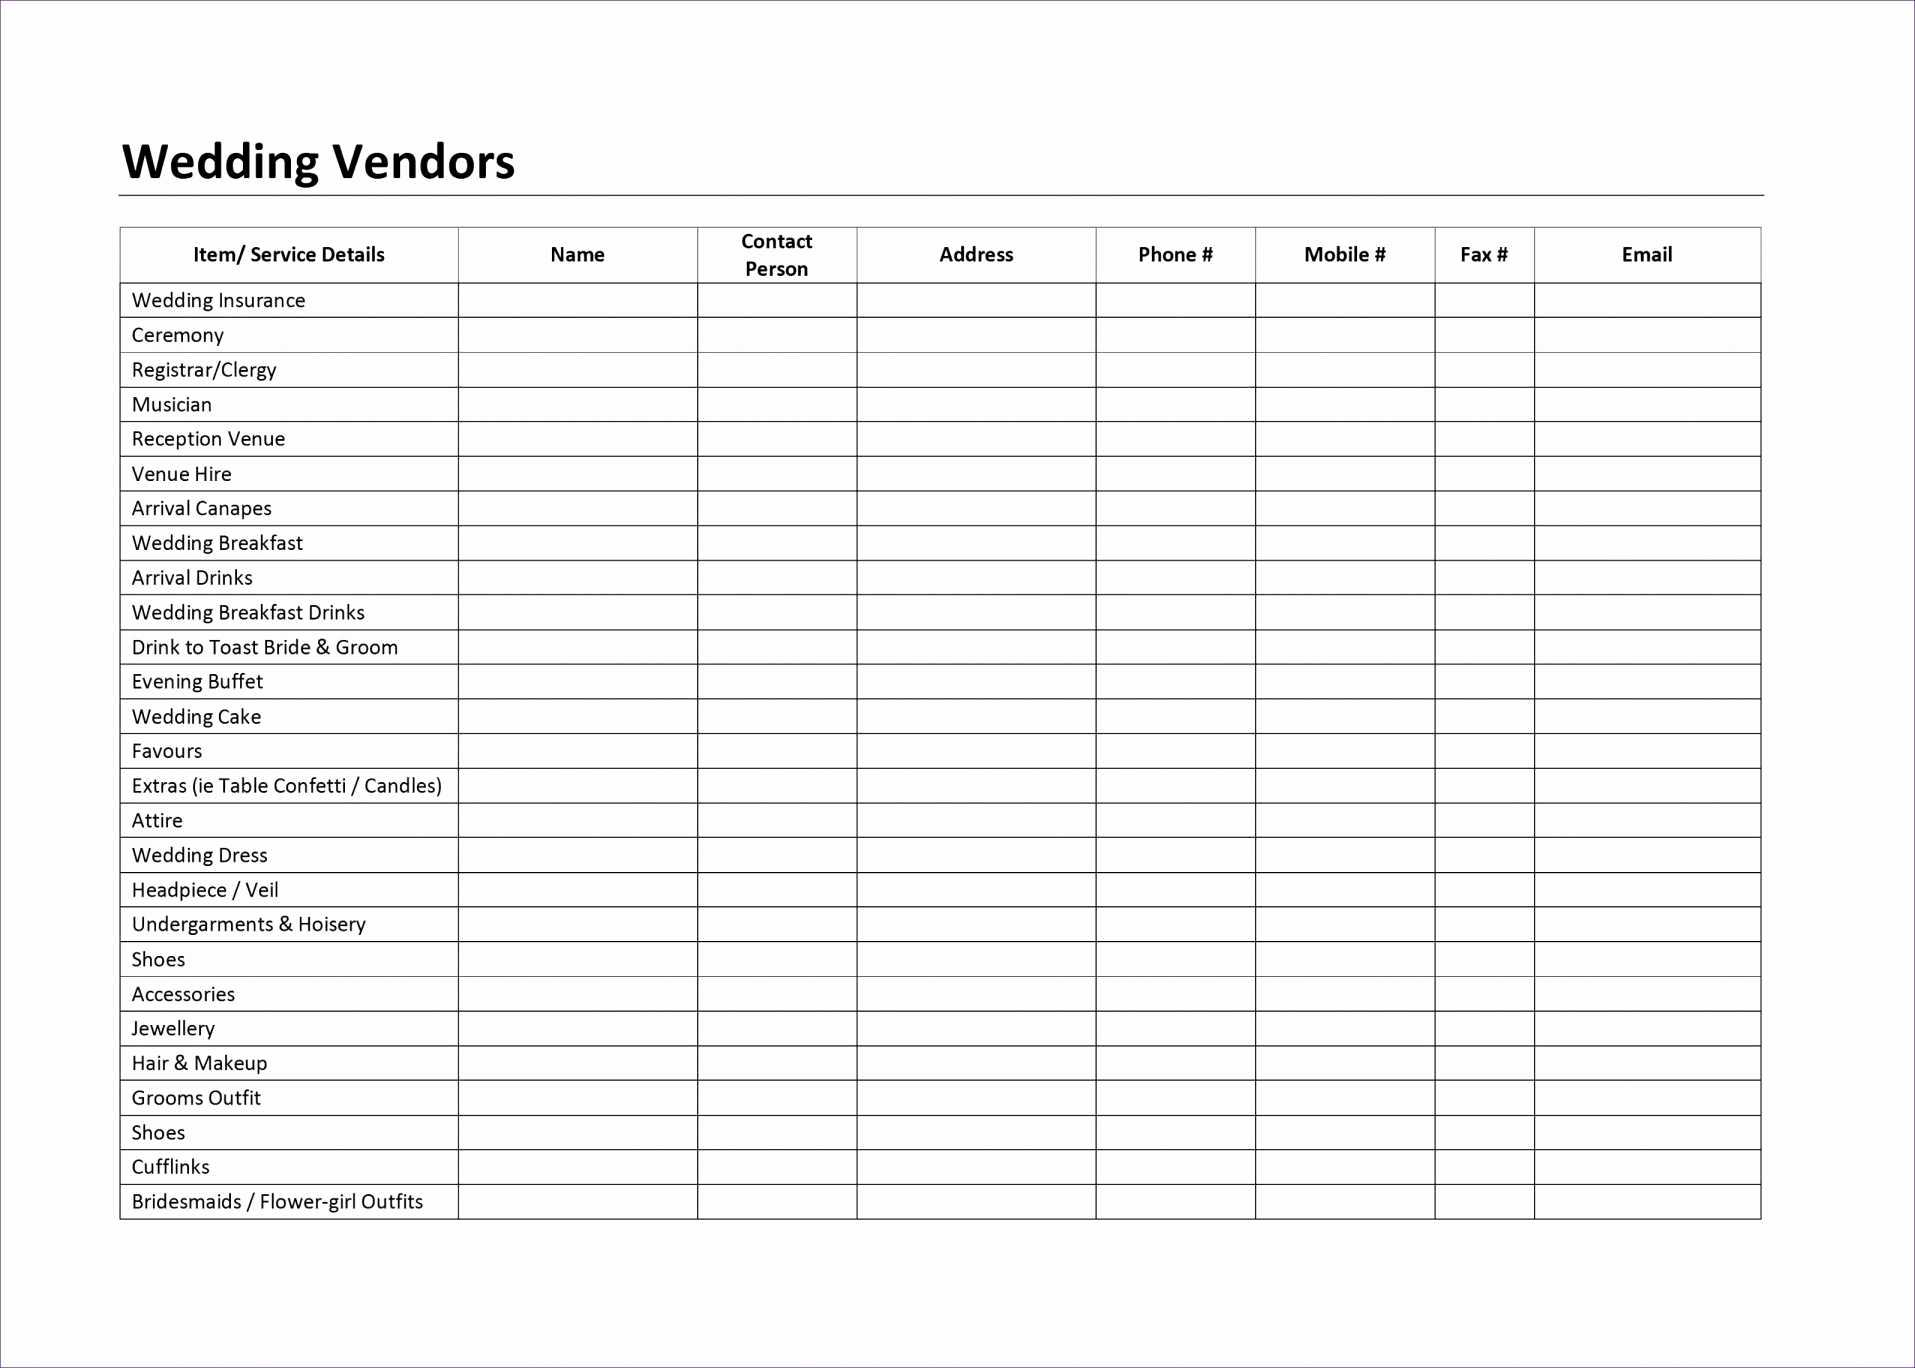 Shoe Inventory Spreadsheet Within 14 Unique Insurance Commission Tracking Spreadsheet  Twables.site